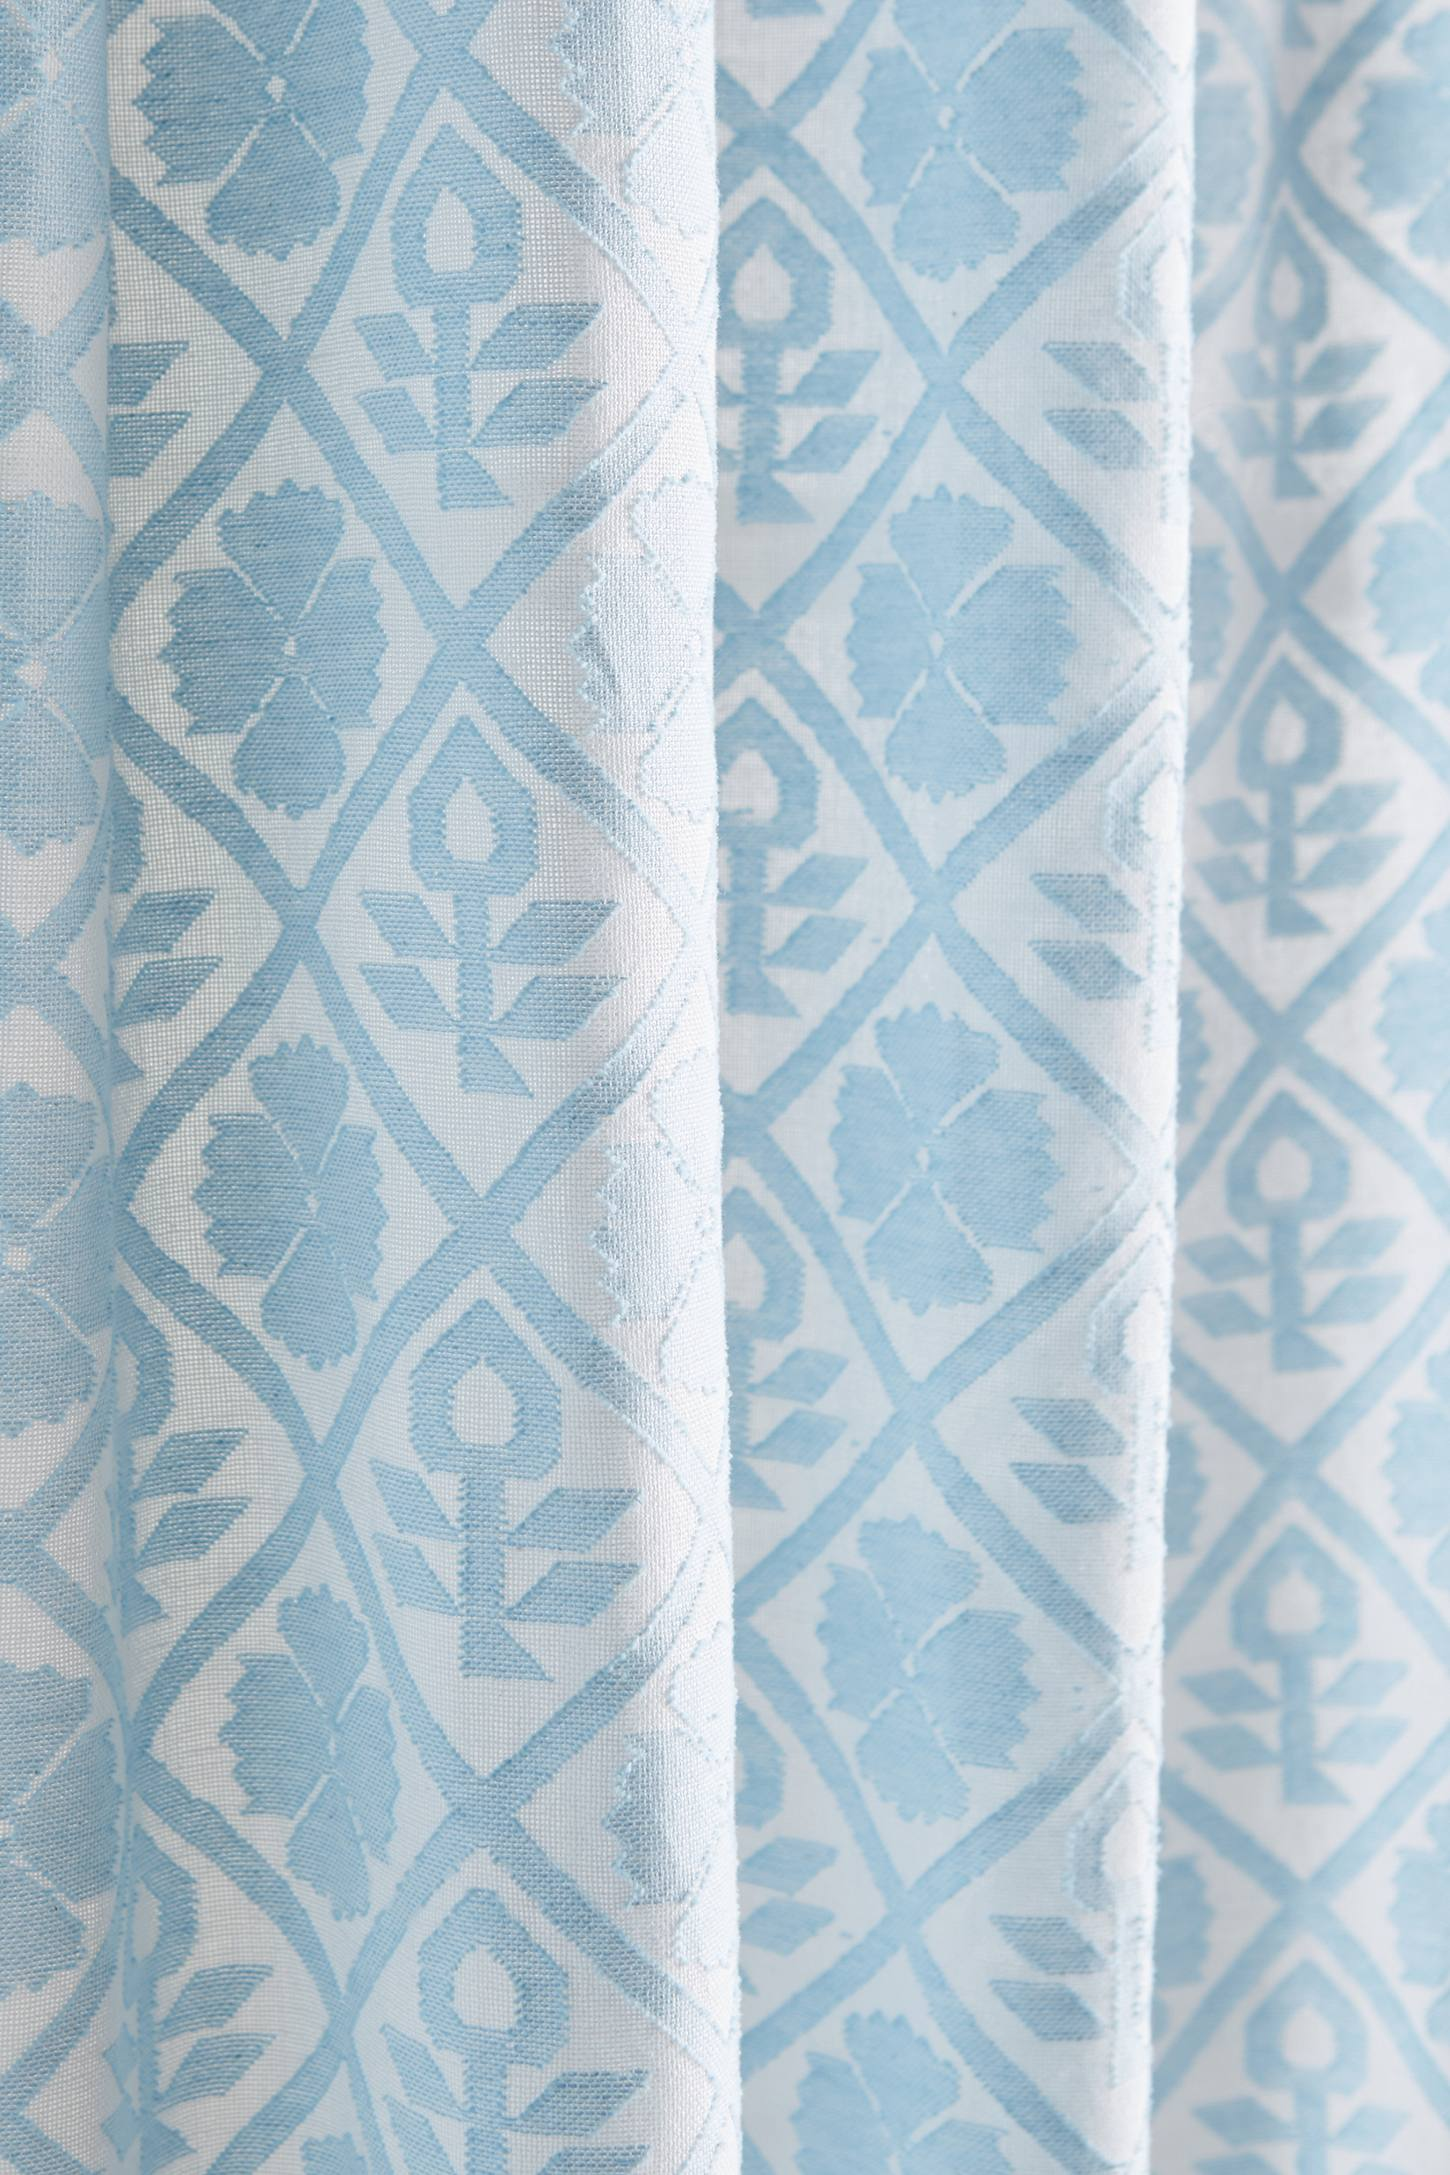 Slide View: 2: Quadrille Curtain